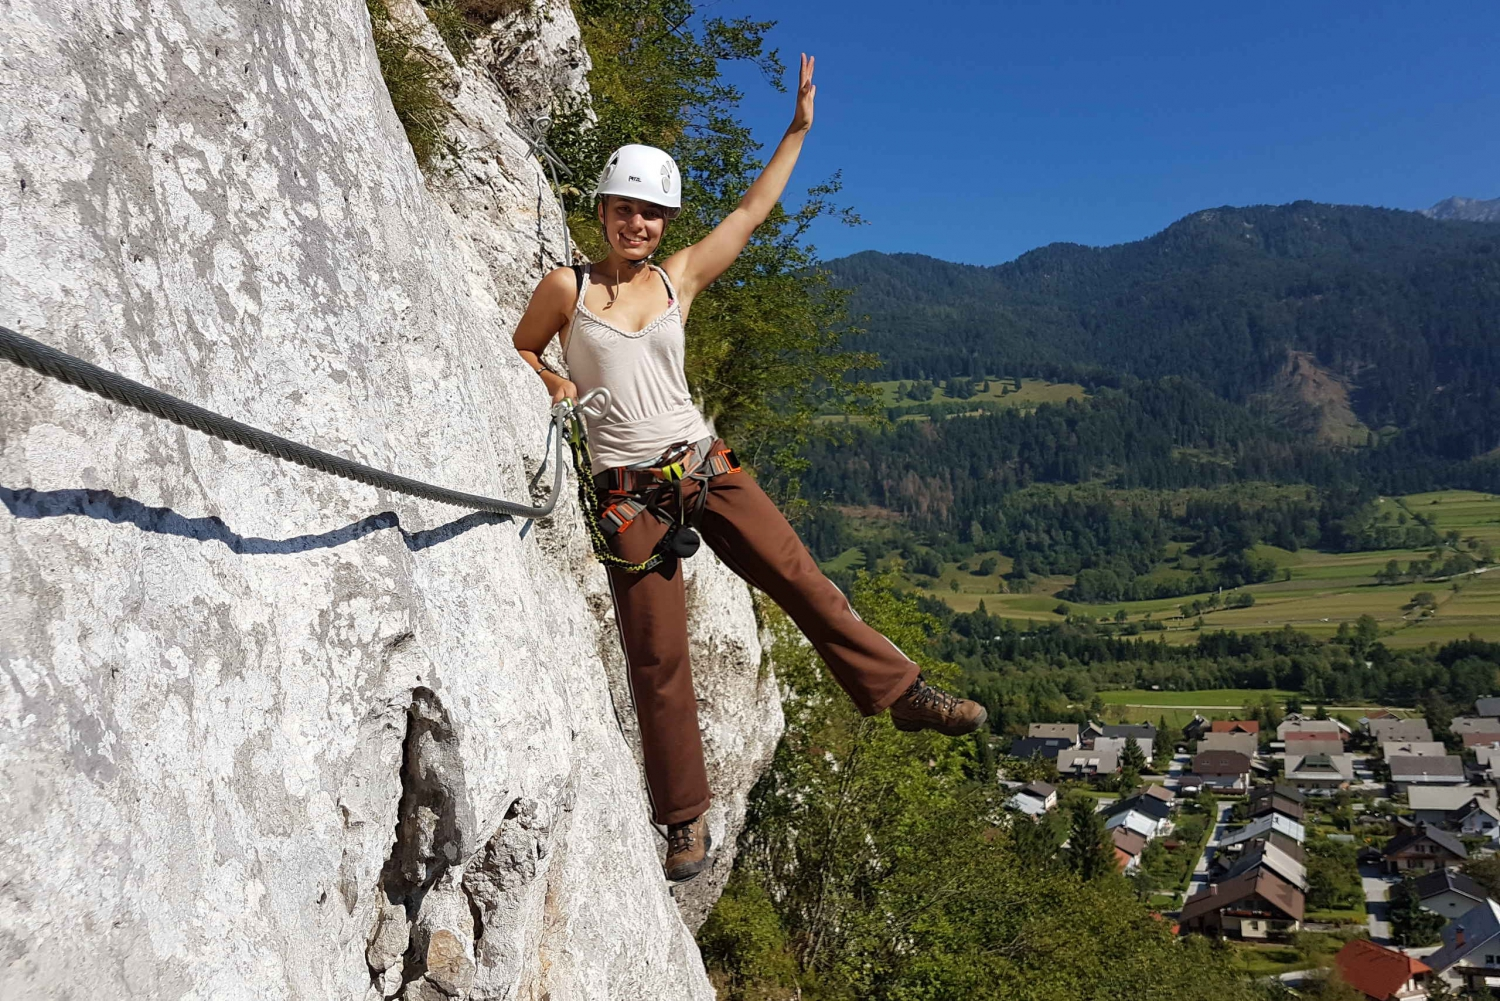 Bled: Historical Via Ferrata Route